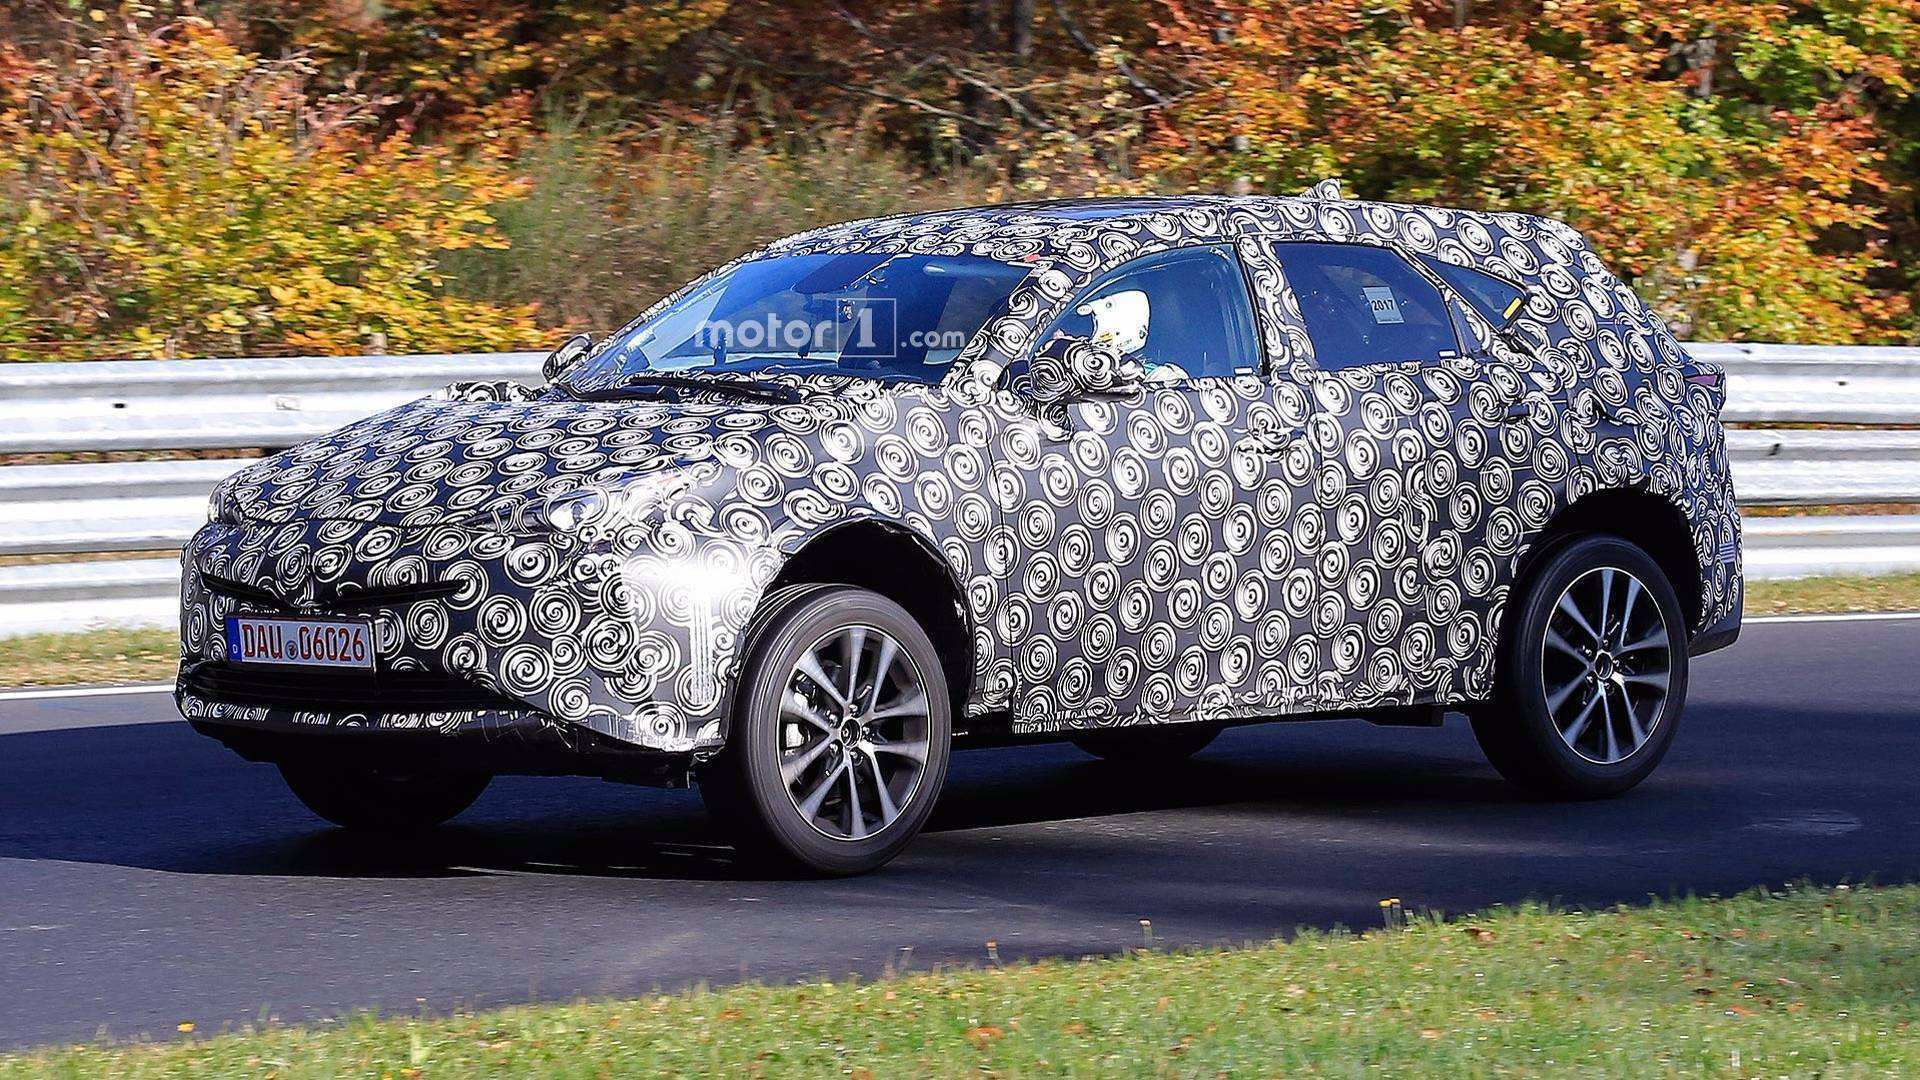 99 New 2020 Spy Shots Toyota Prius Release Date And Concept